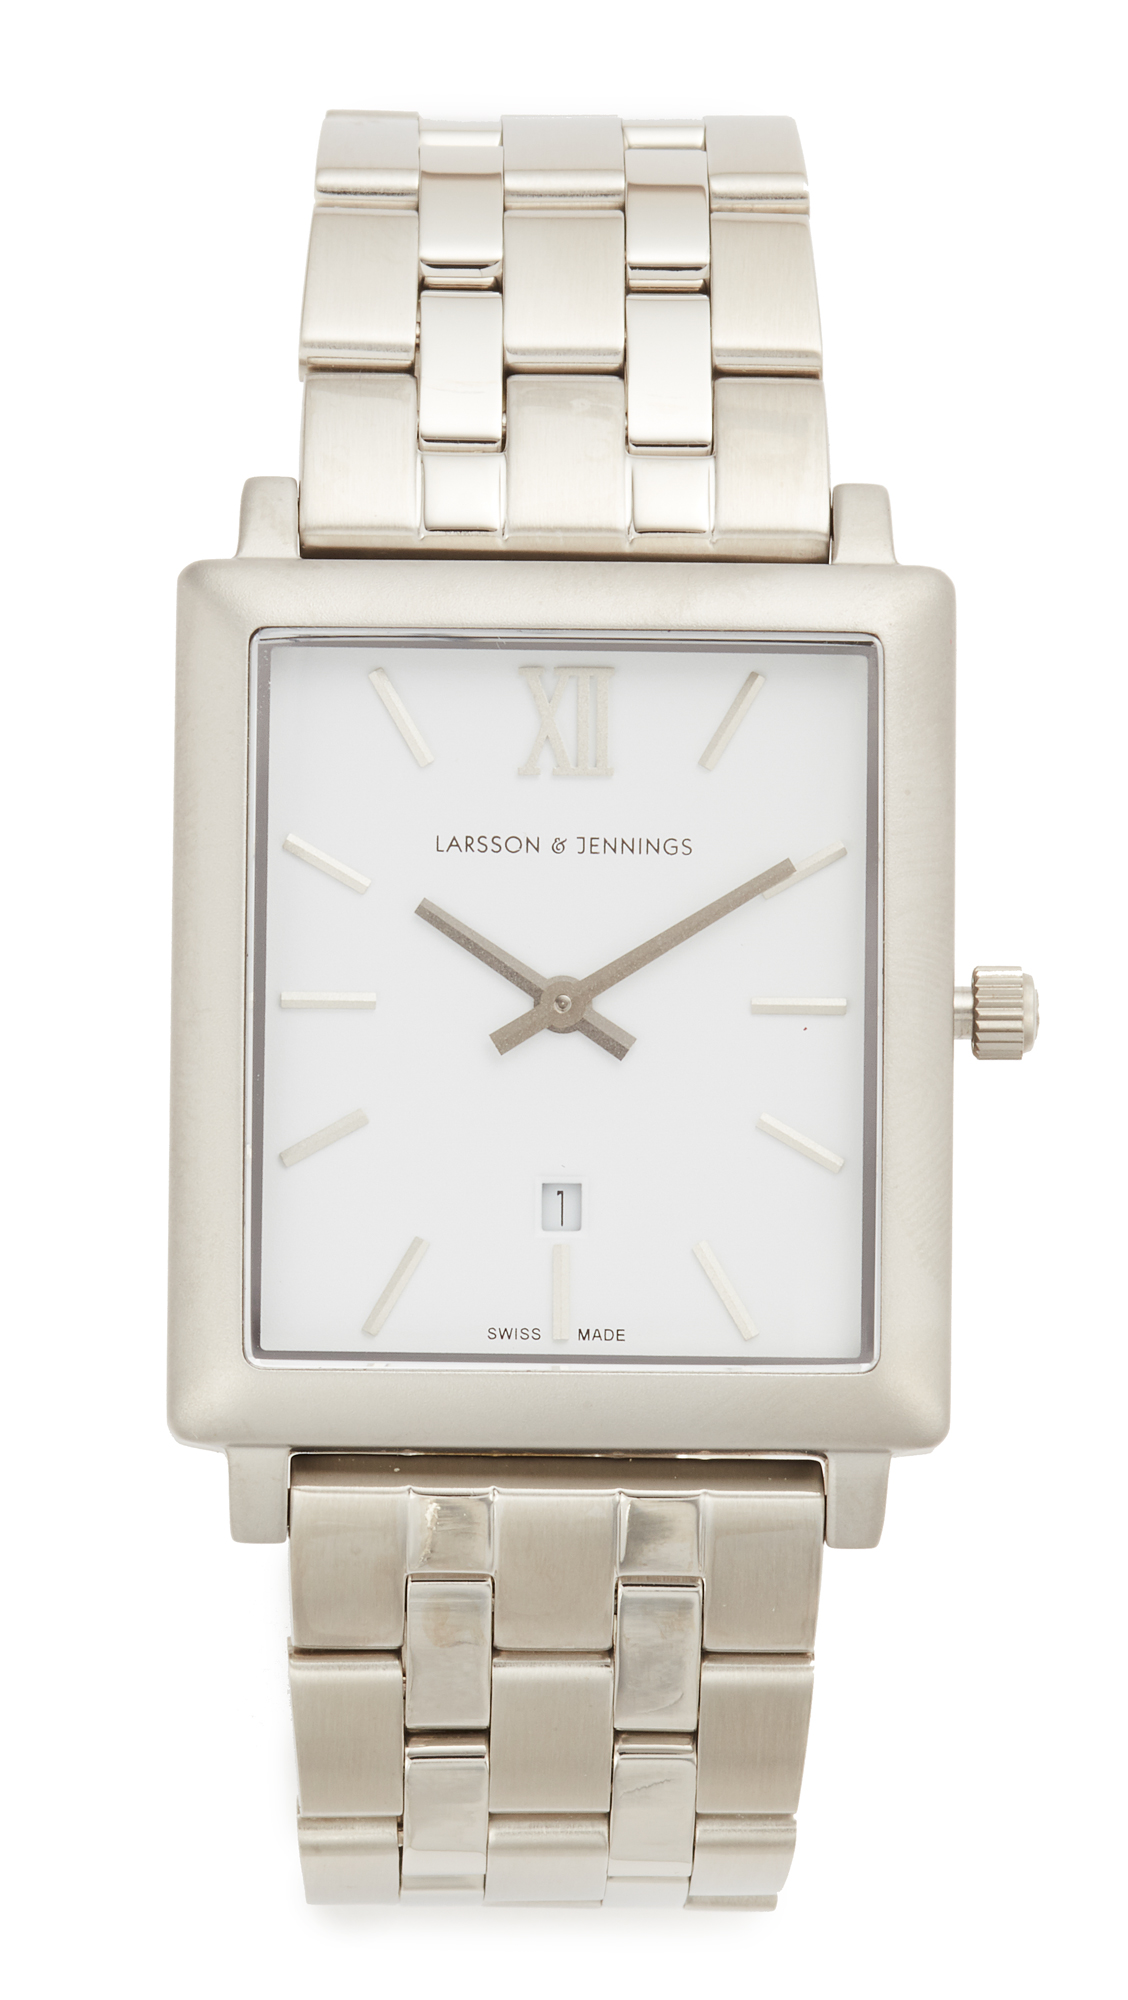 Larsson & Jennings Norse 5 Link Watch - Silver/White